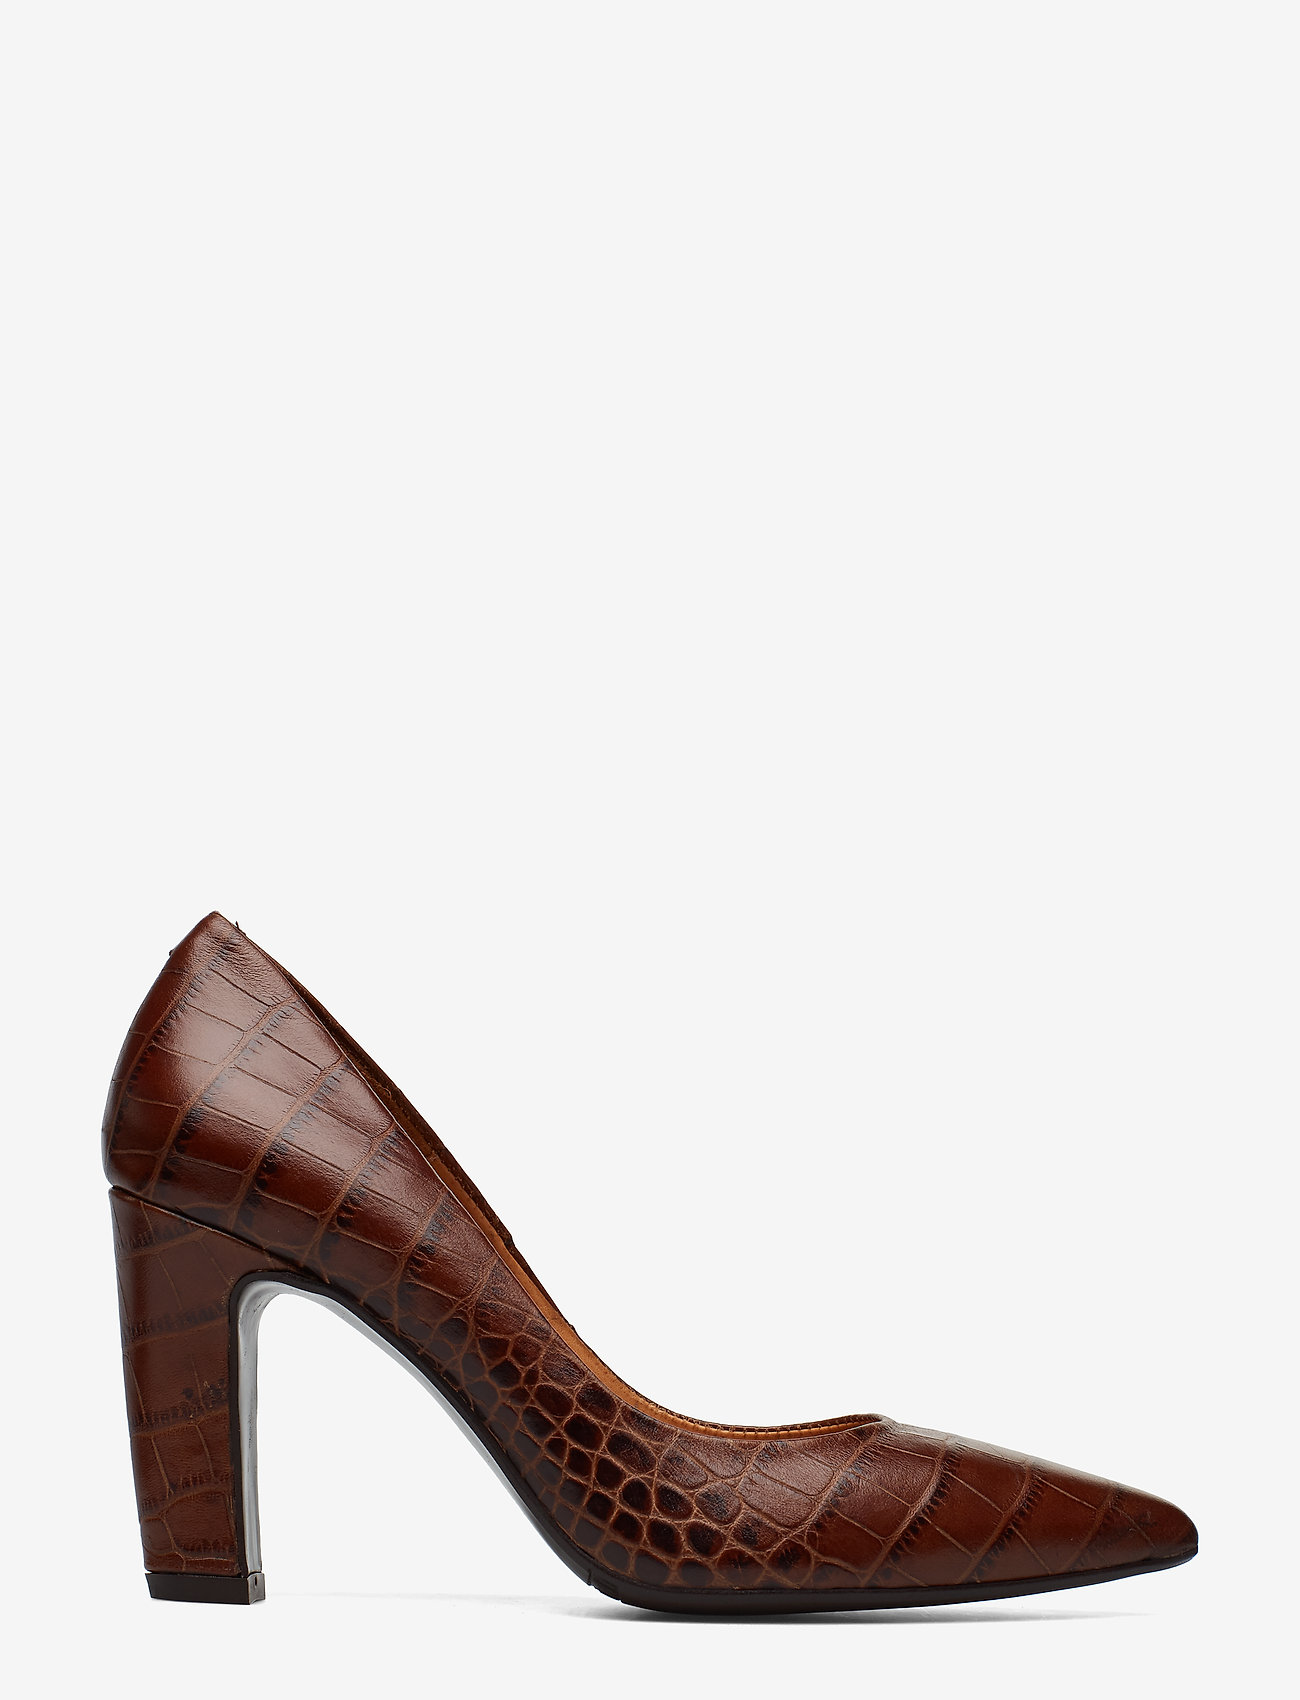 Billi Bi - Pumps 3333 - klassiset piikkikorkokengät - brown copico croco 46